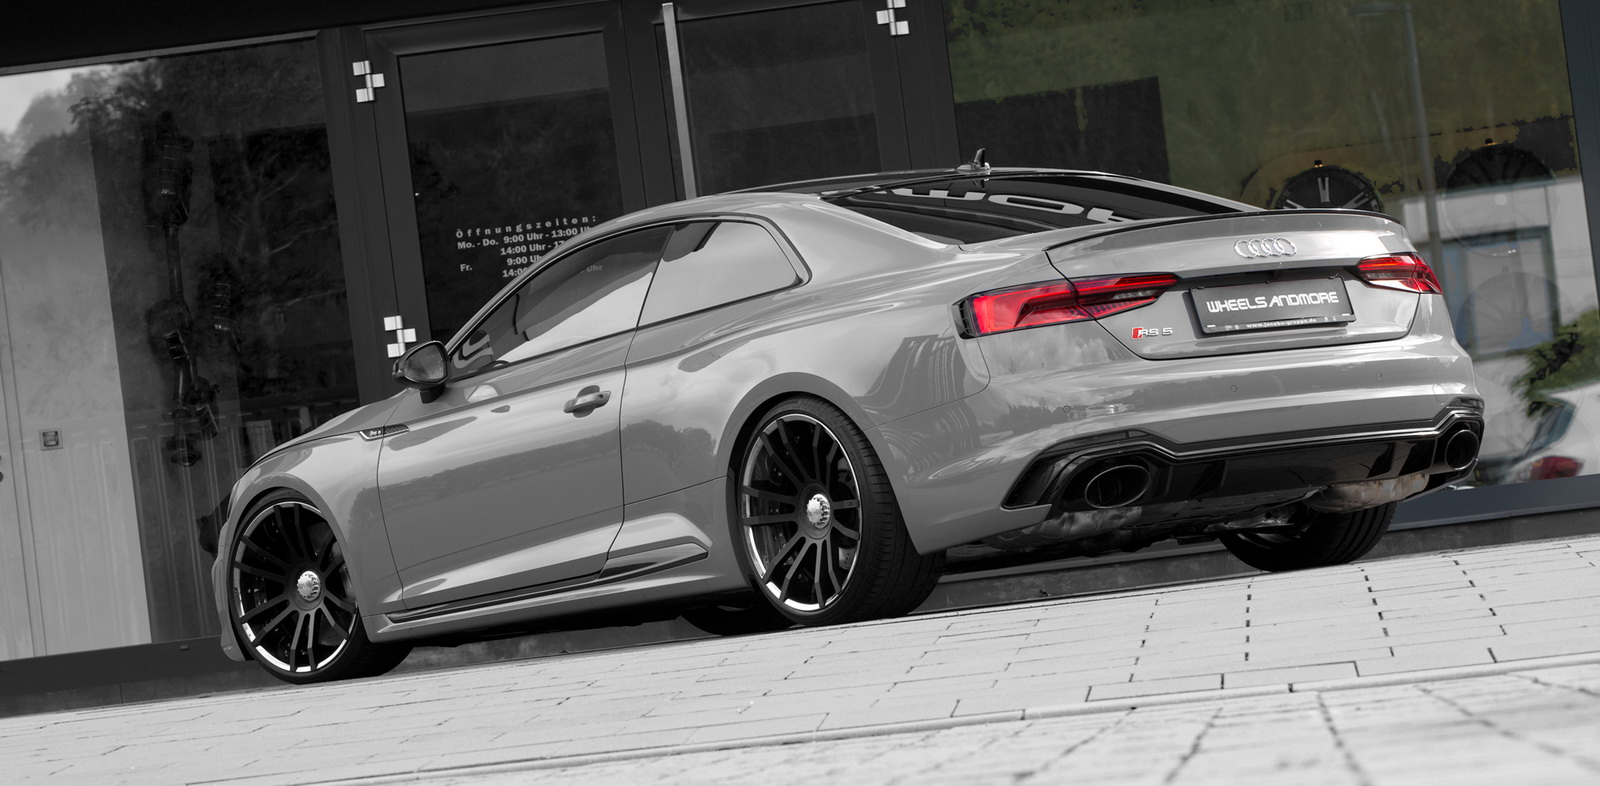 wheelsandmore pump up the audi rs5 to 513 horses. Black Bedroom Furniture Sets. Home Design Ideas